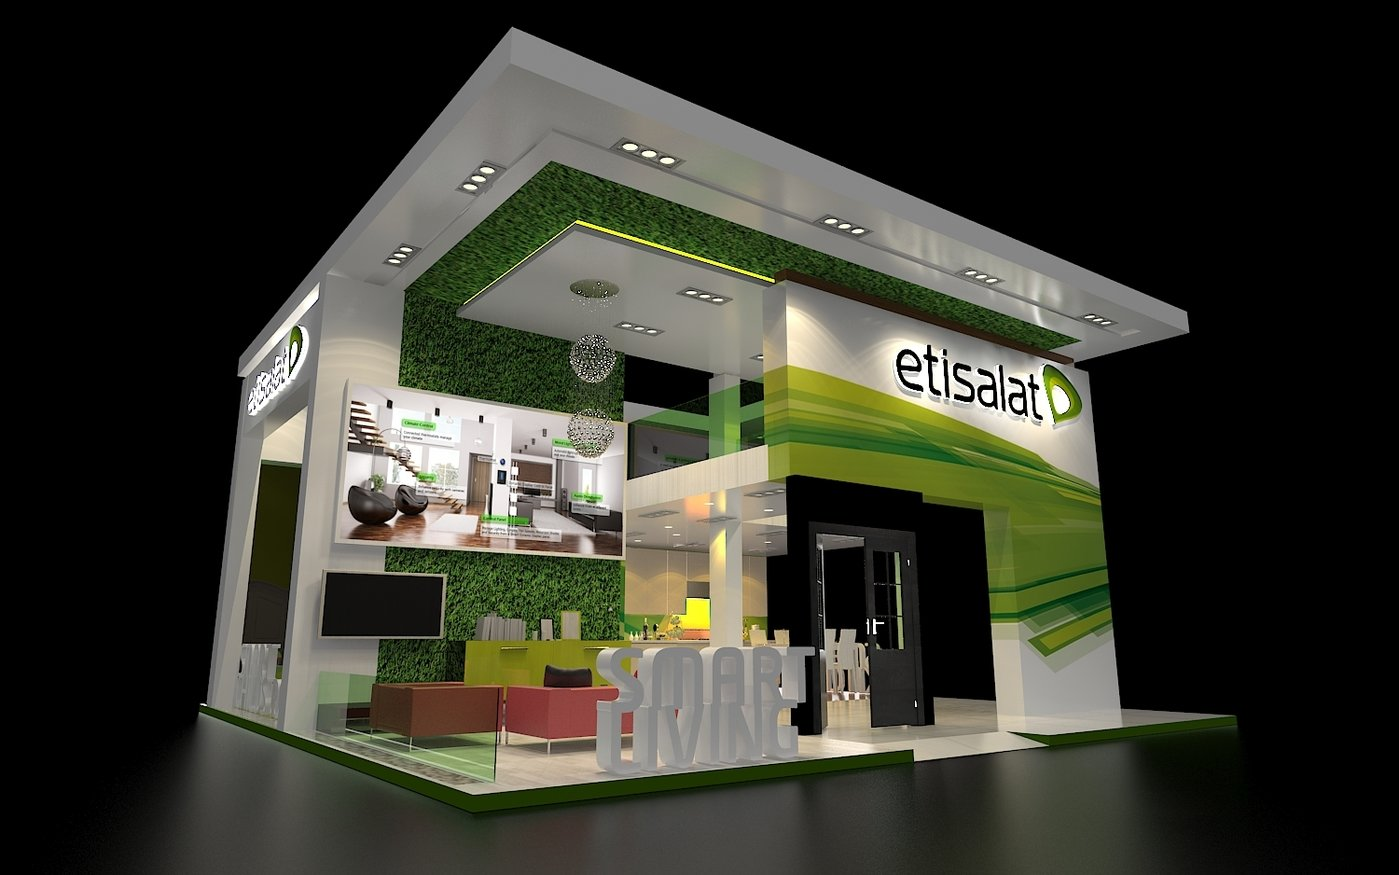 Exhibition Stand Hire Kent : Etisalat exhibition booth stand by rohtash jangra at coroflot